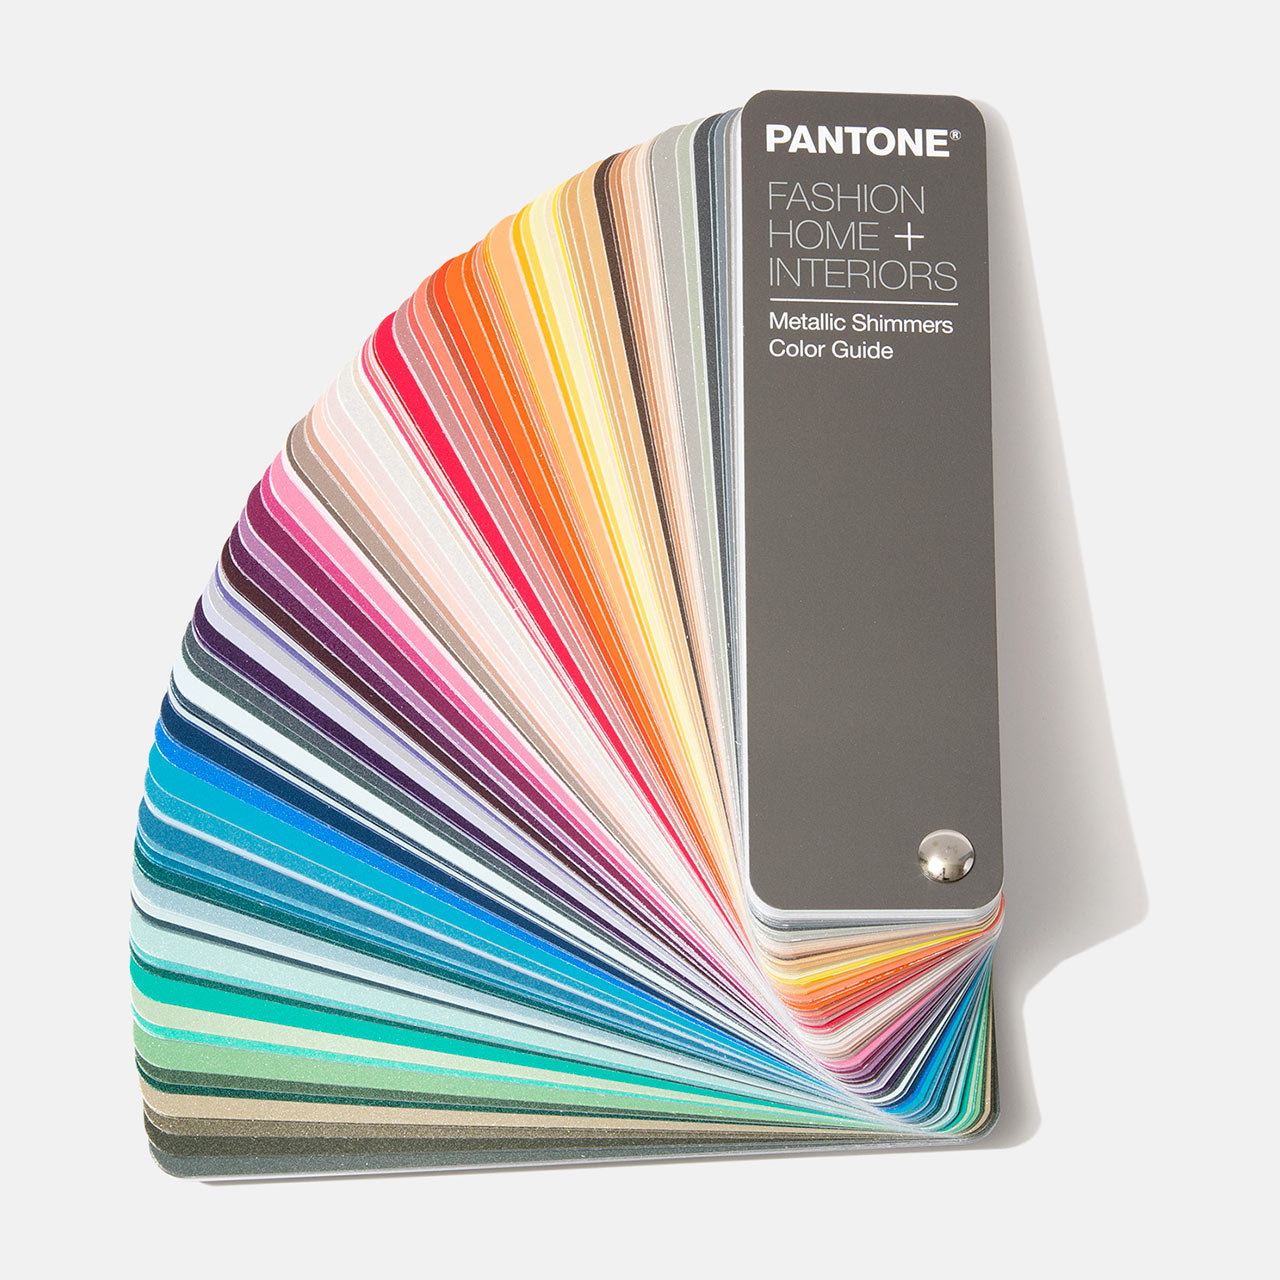 FHIP310N Pantone Metallic Shimmers Color Guide | Pantone